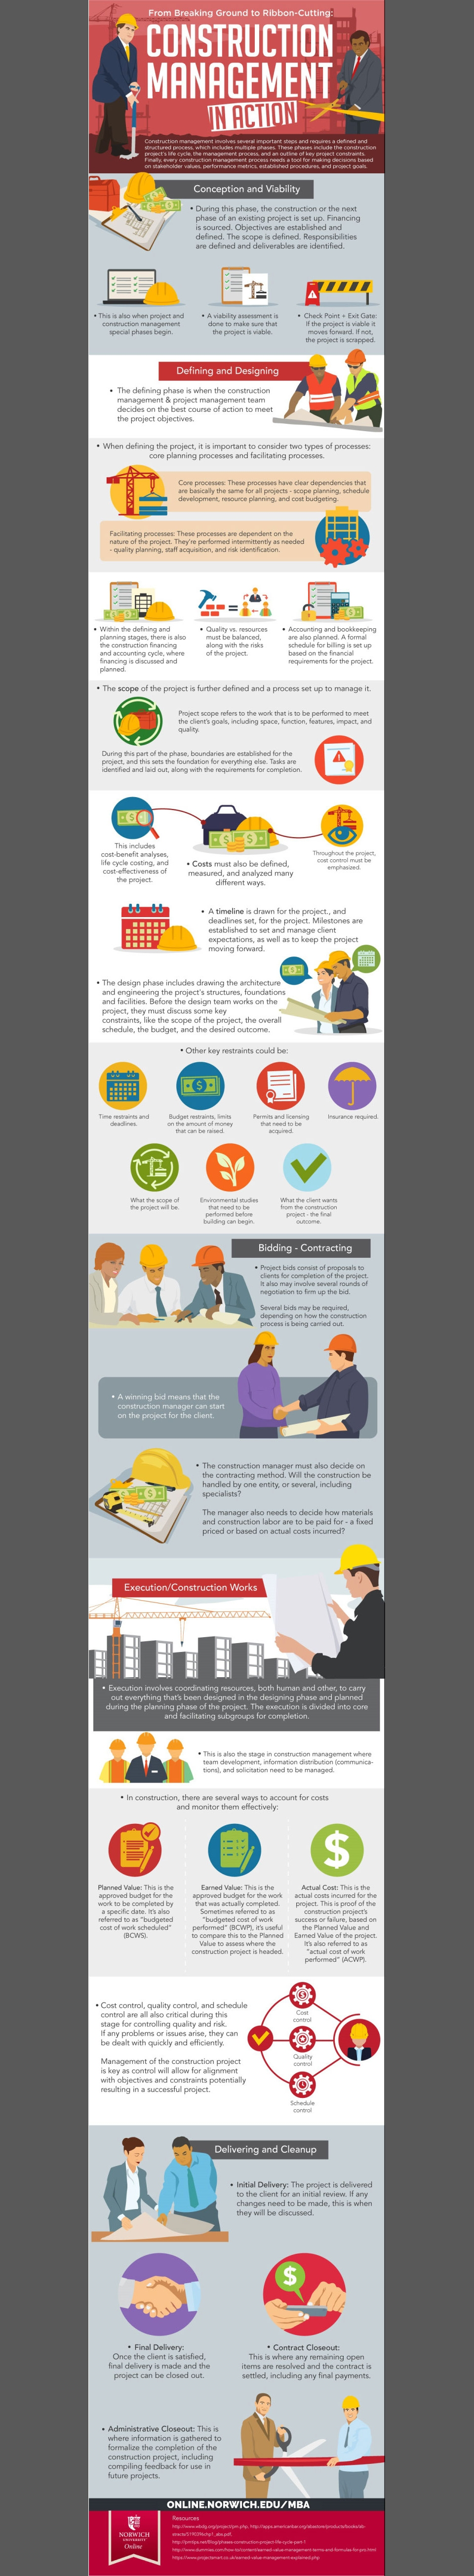 construction management mba infographic image